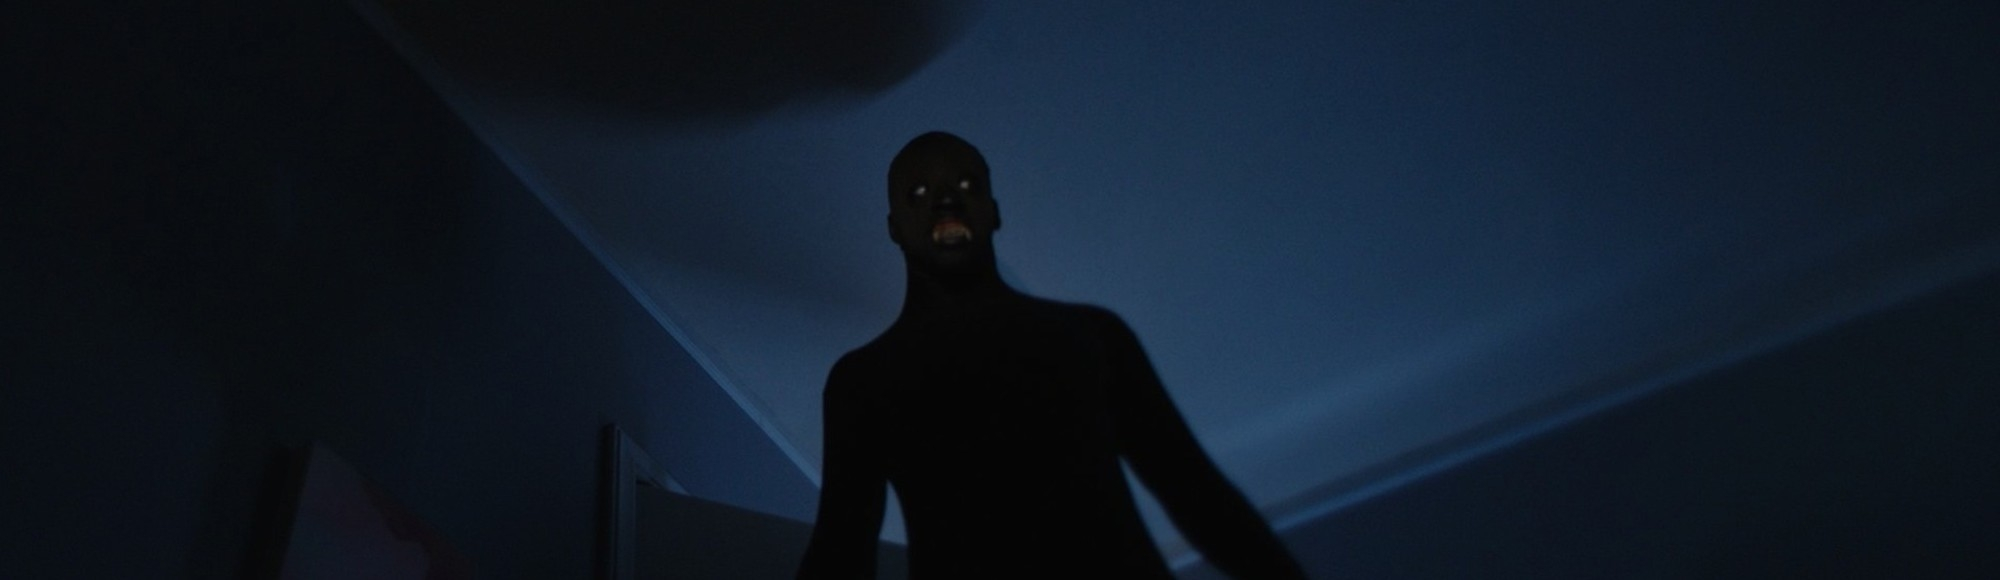 the-nightmare-reveals-the-real-life-horror-of-sleep-paralysis-500-1432760164-crop_lede